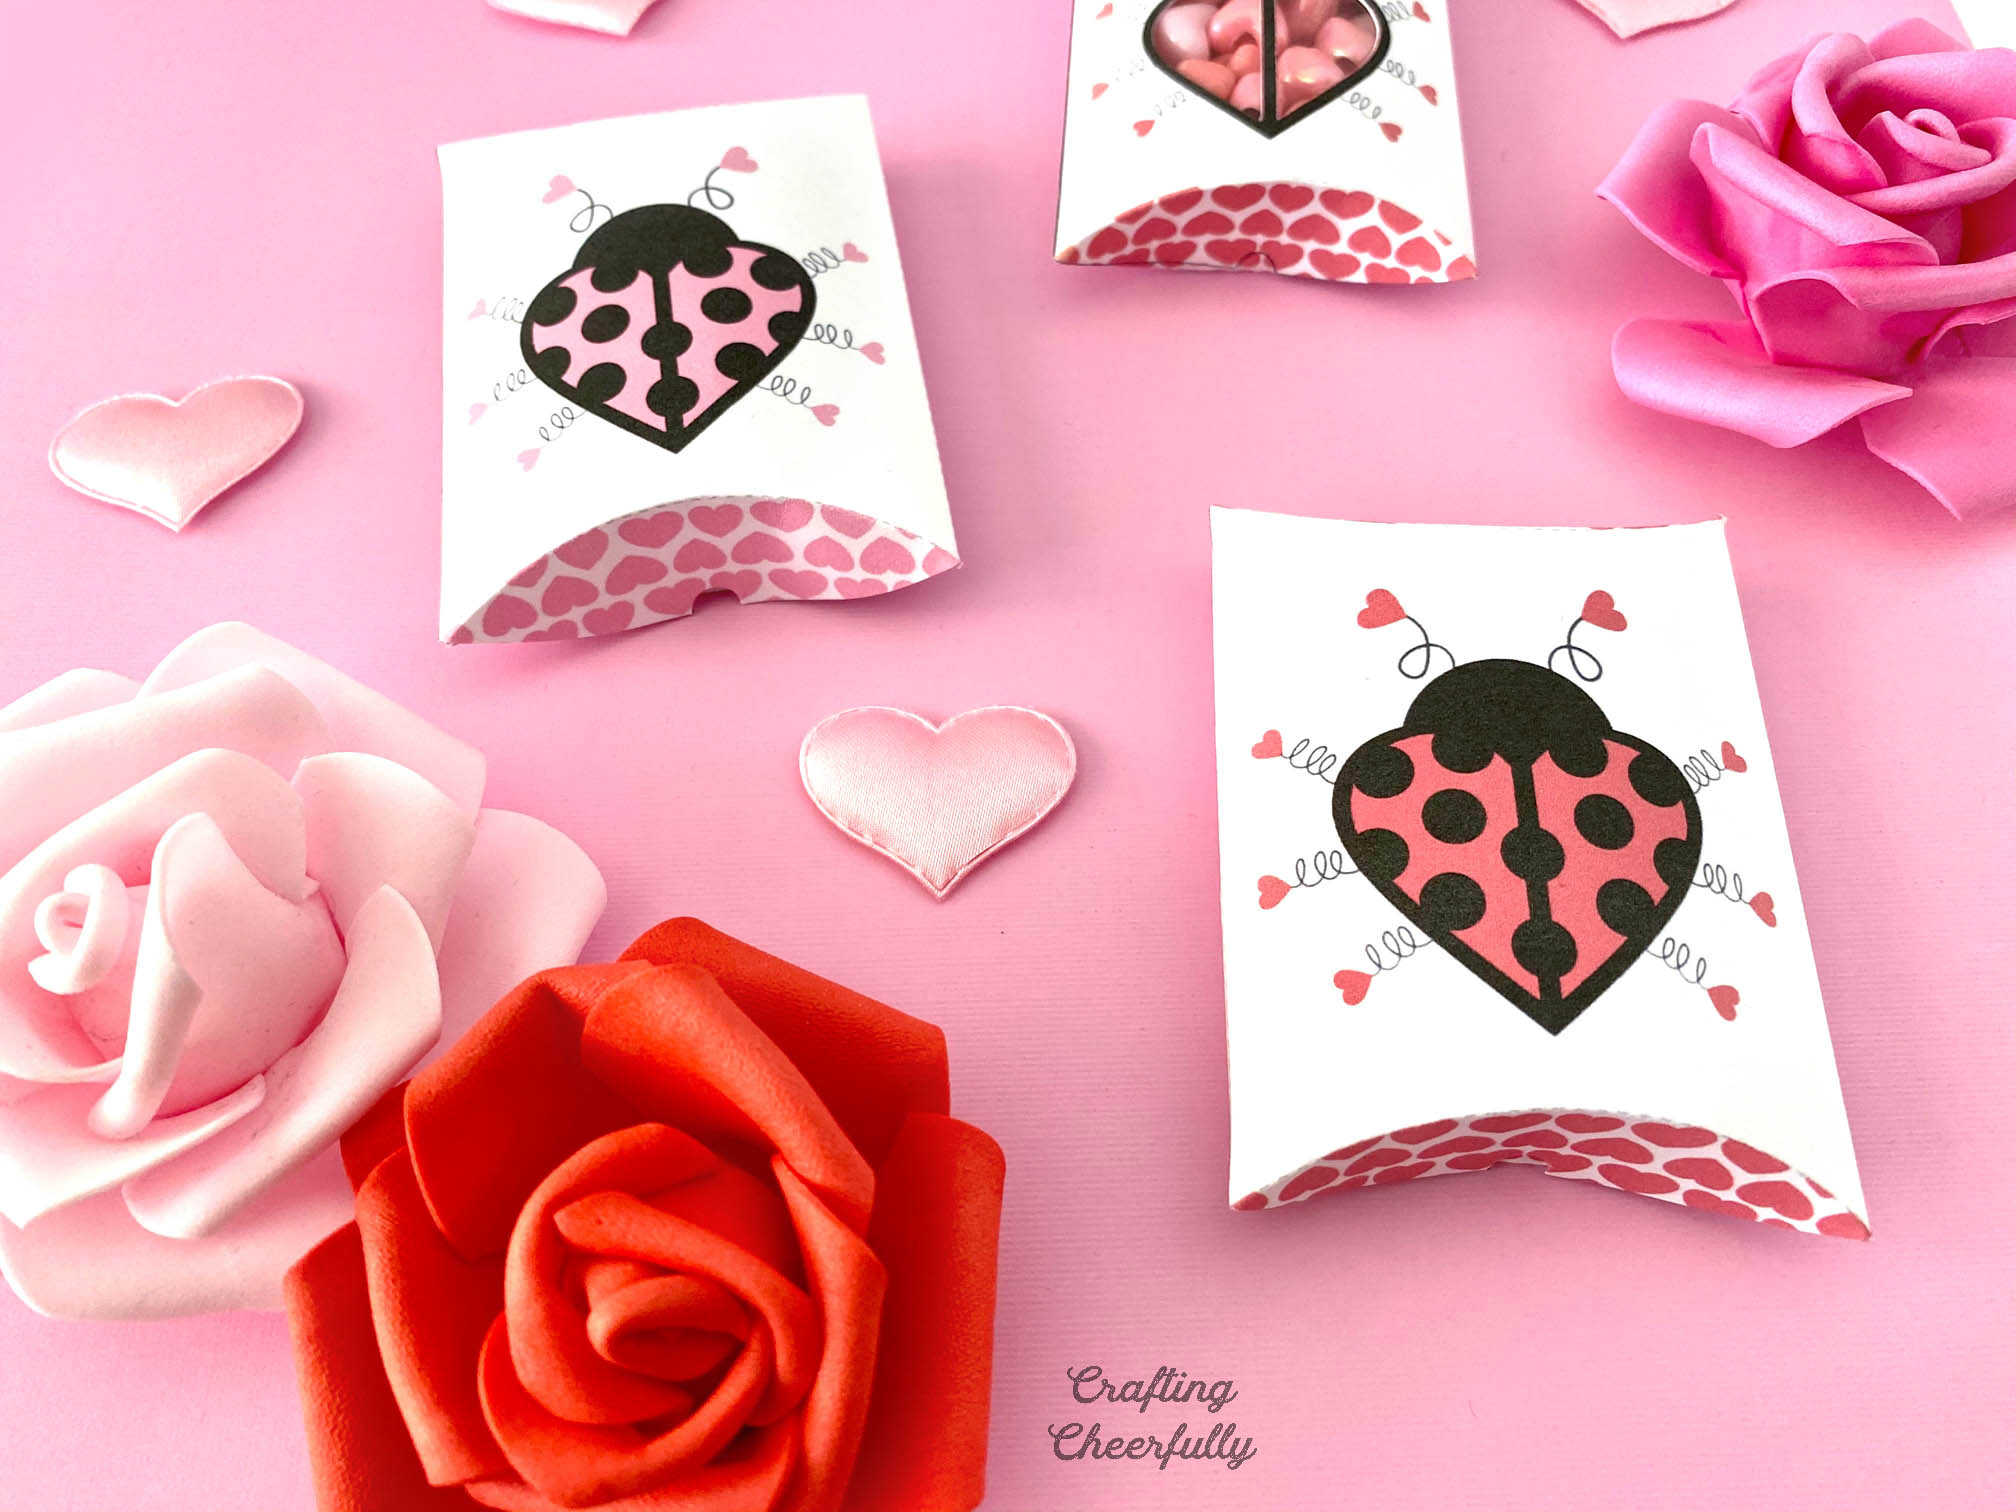 Valentine's Day pillow boxes with cute love bugs on them. Roses and hearts around them.